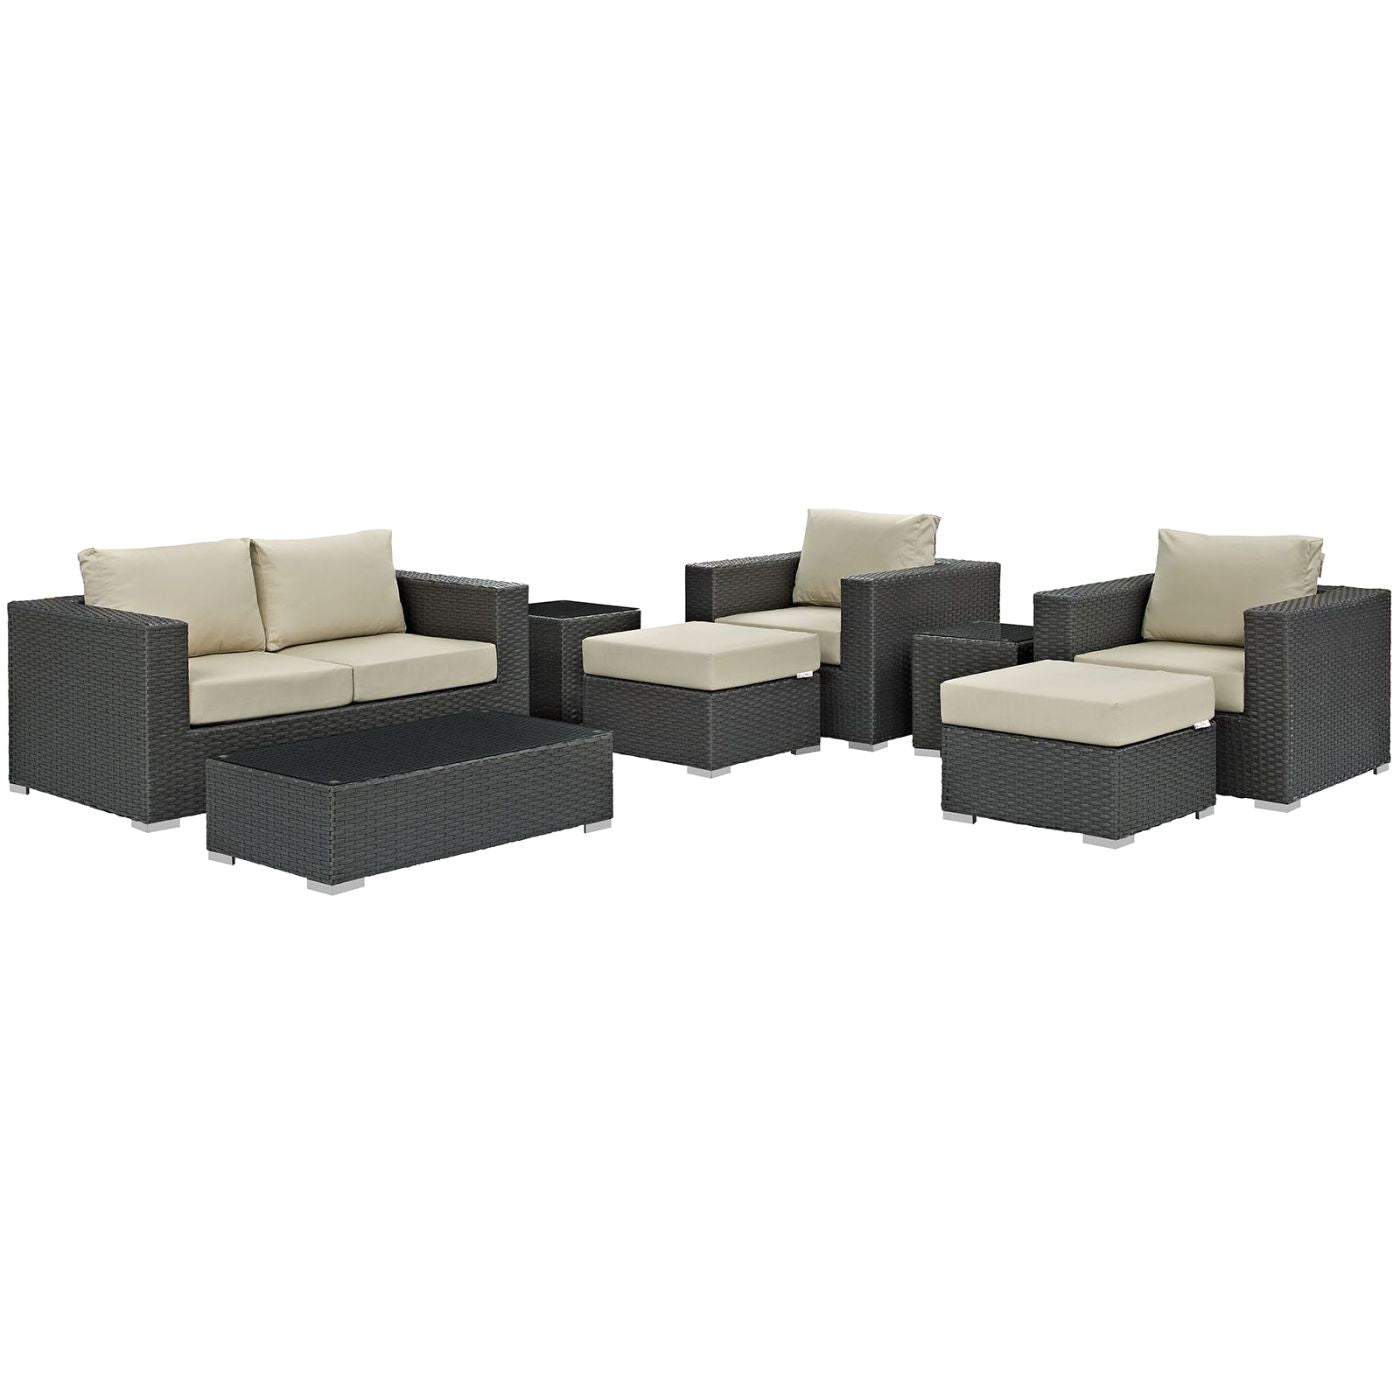 Sojourn 8 Piece Outdoor Patio Rattan Sunbrella Sectional Set Canvas Antique  Beige ...